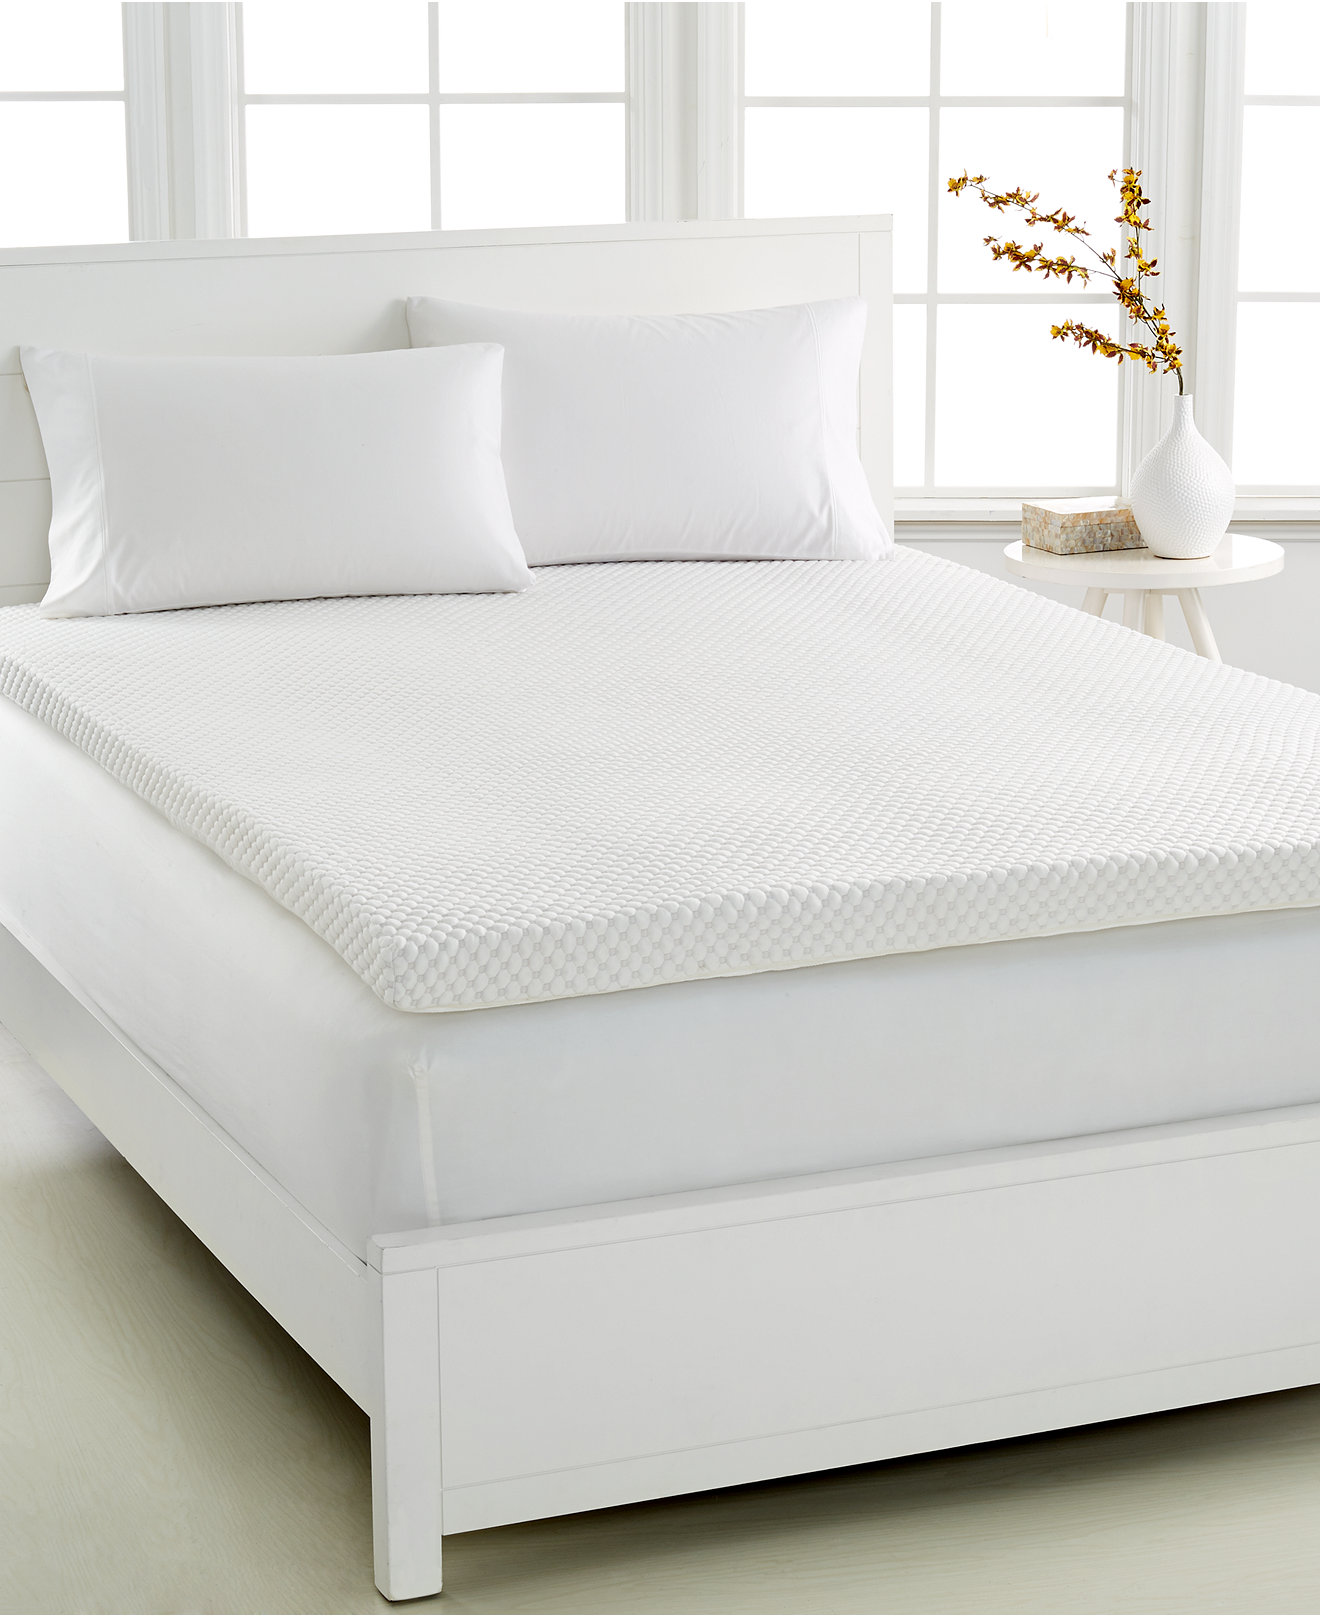 Serta 3 inch memory foam mattress topper - Dream Science By Martha Stewart Collection 3 Memory Foam Mattress Toppers Venttech Ventilated